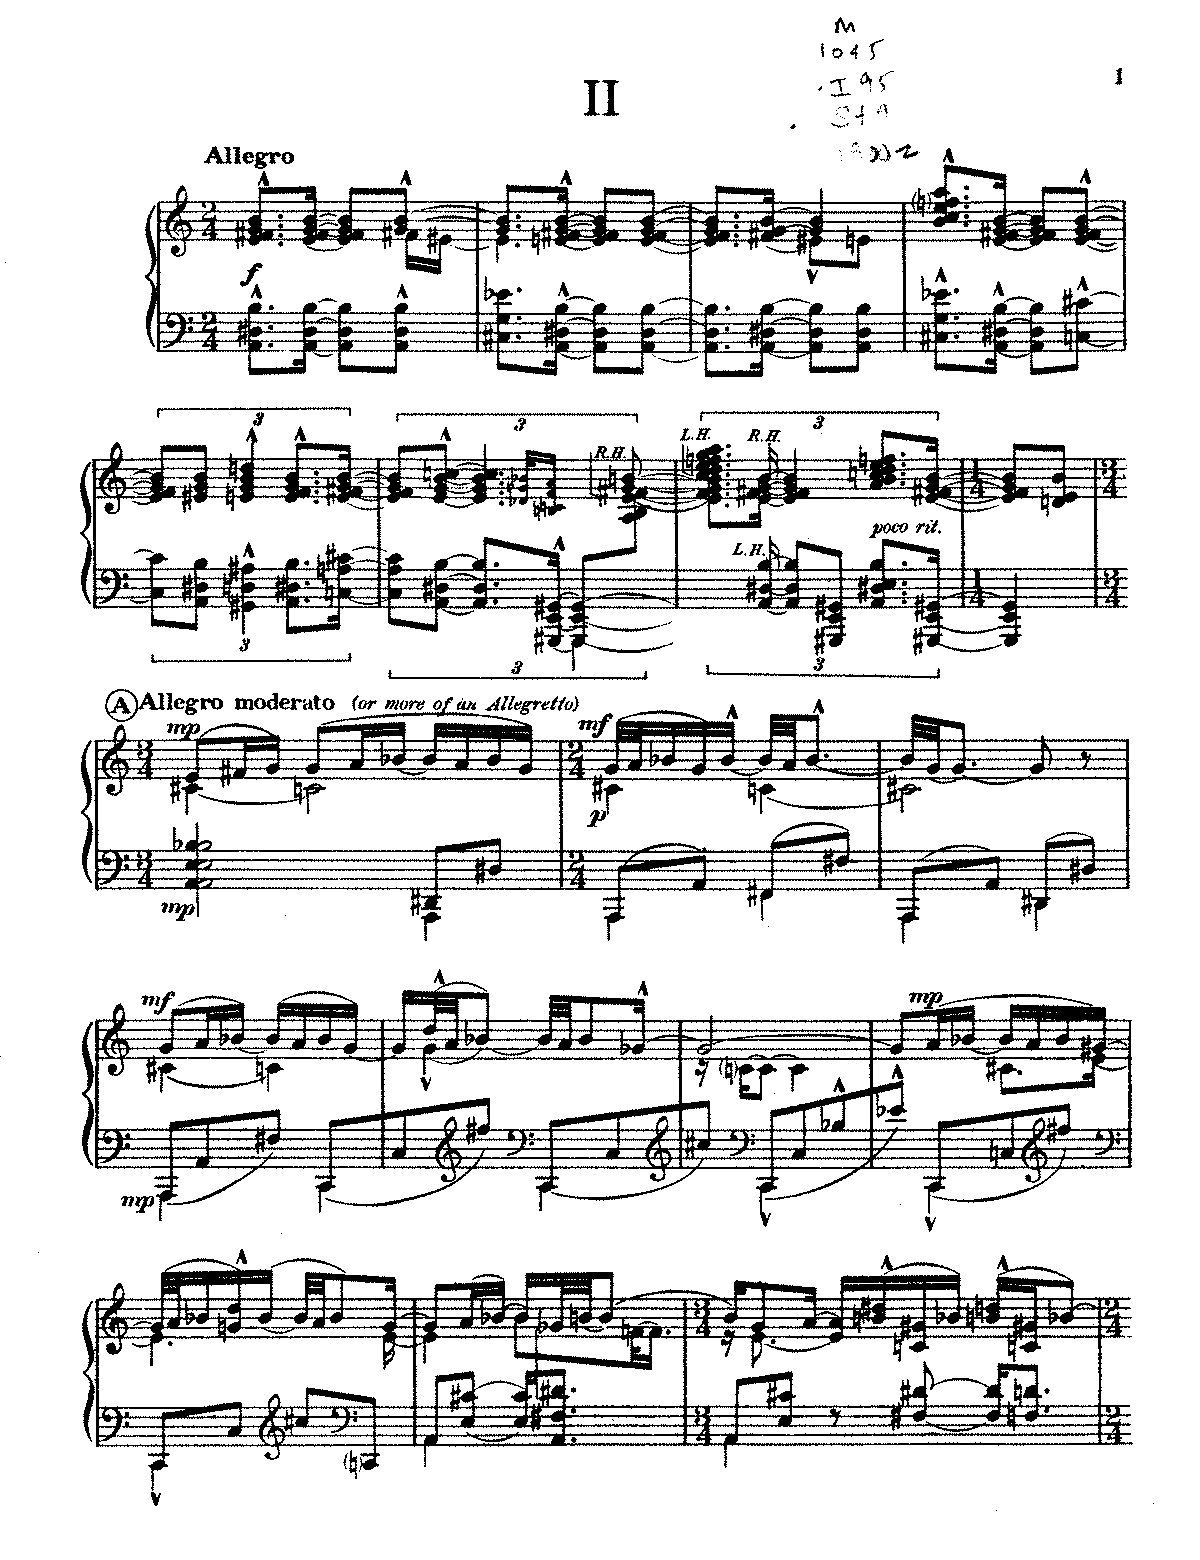 SIBLEY1802.23812.6591-39087030301123piano (2nd mvm).pdf